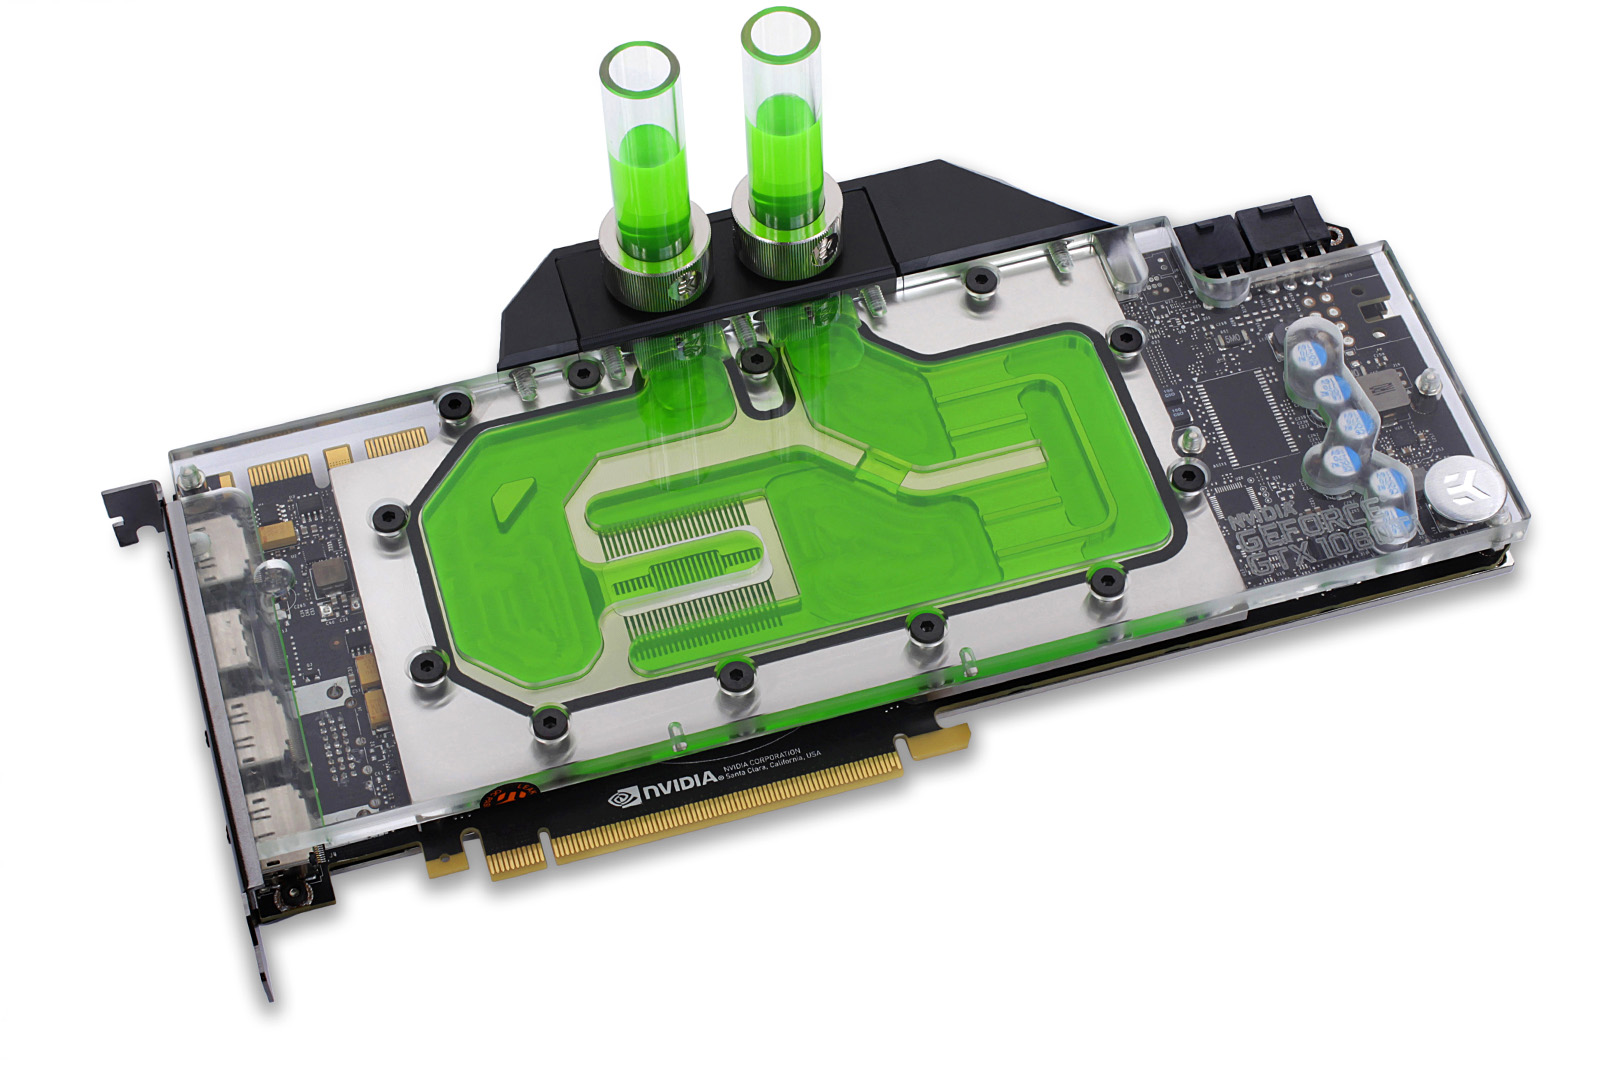 EK launch their first GTX 1080 Ti ready GPU water blocks